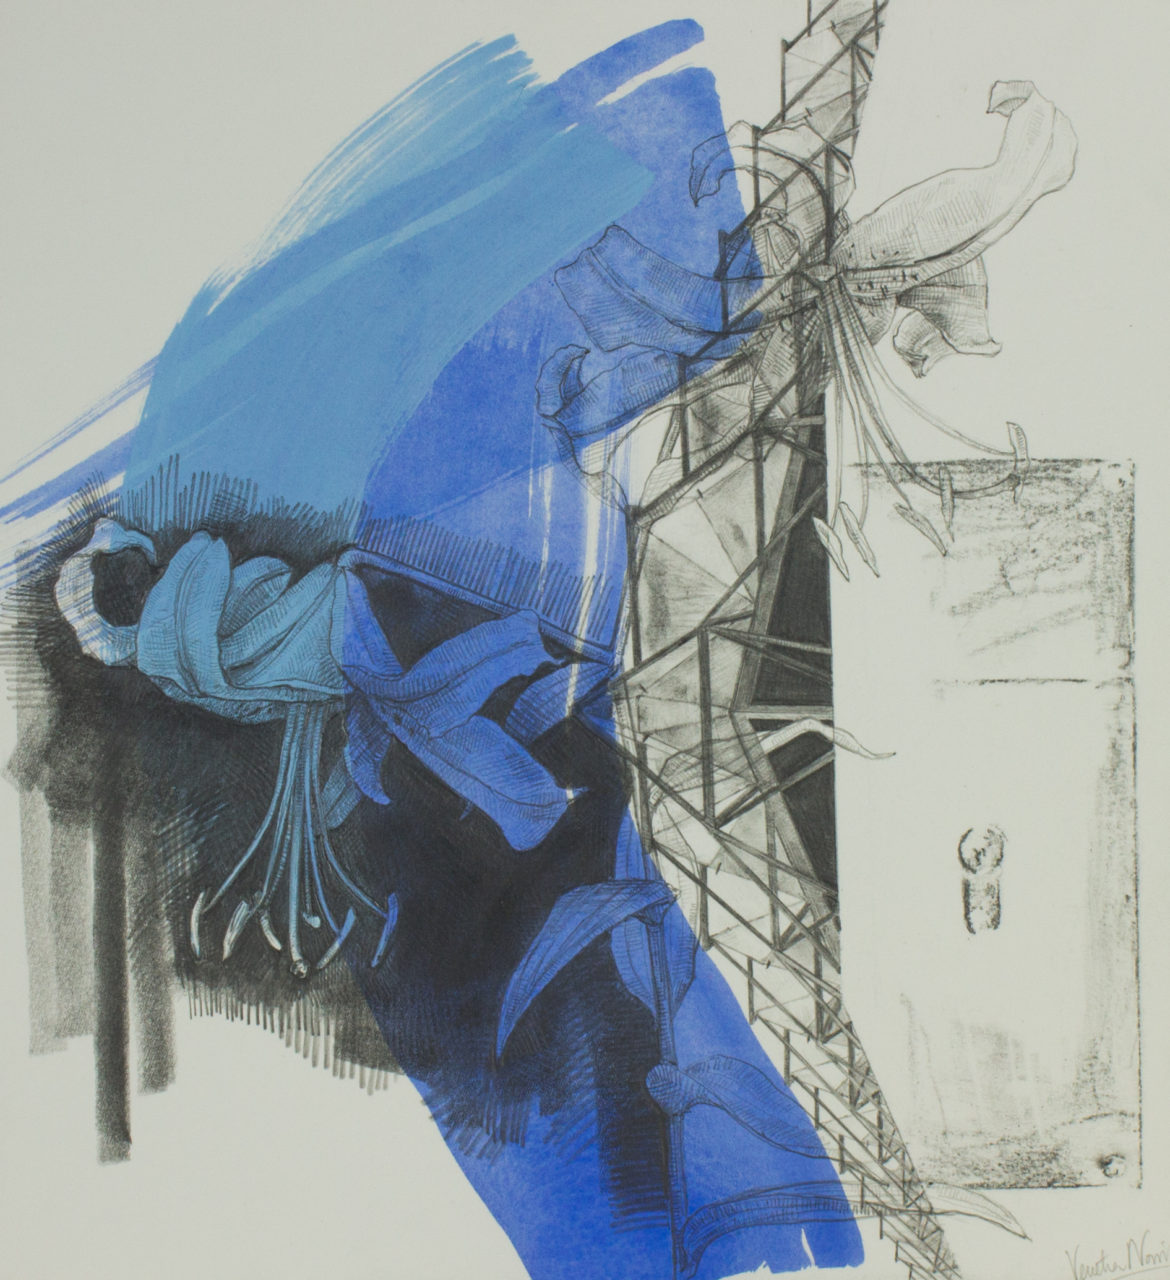 Early morning bustle, graphite and paint on board, 38.2 x 35.4 cm, £725